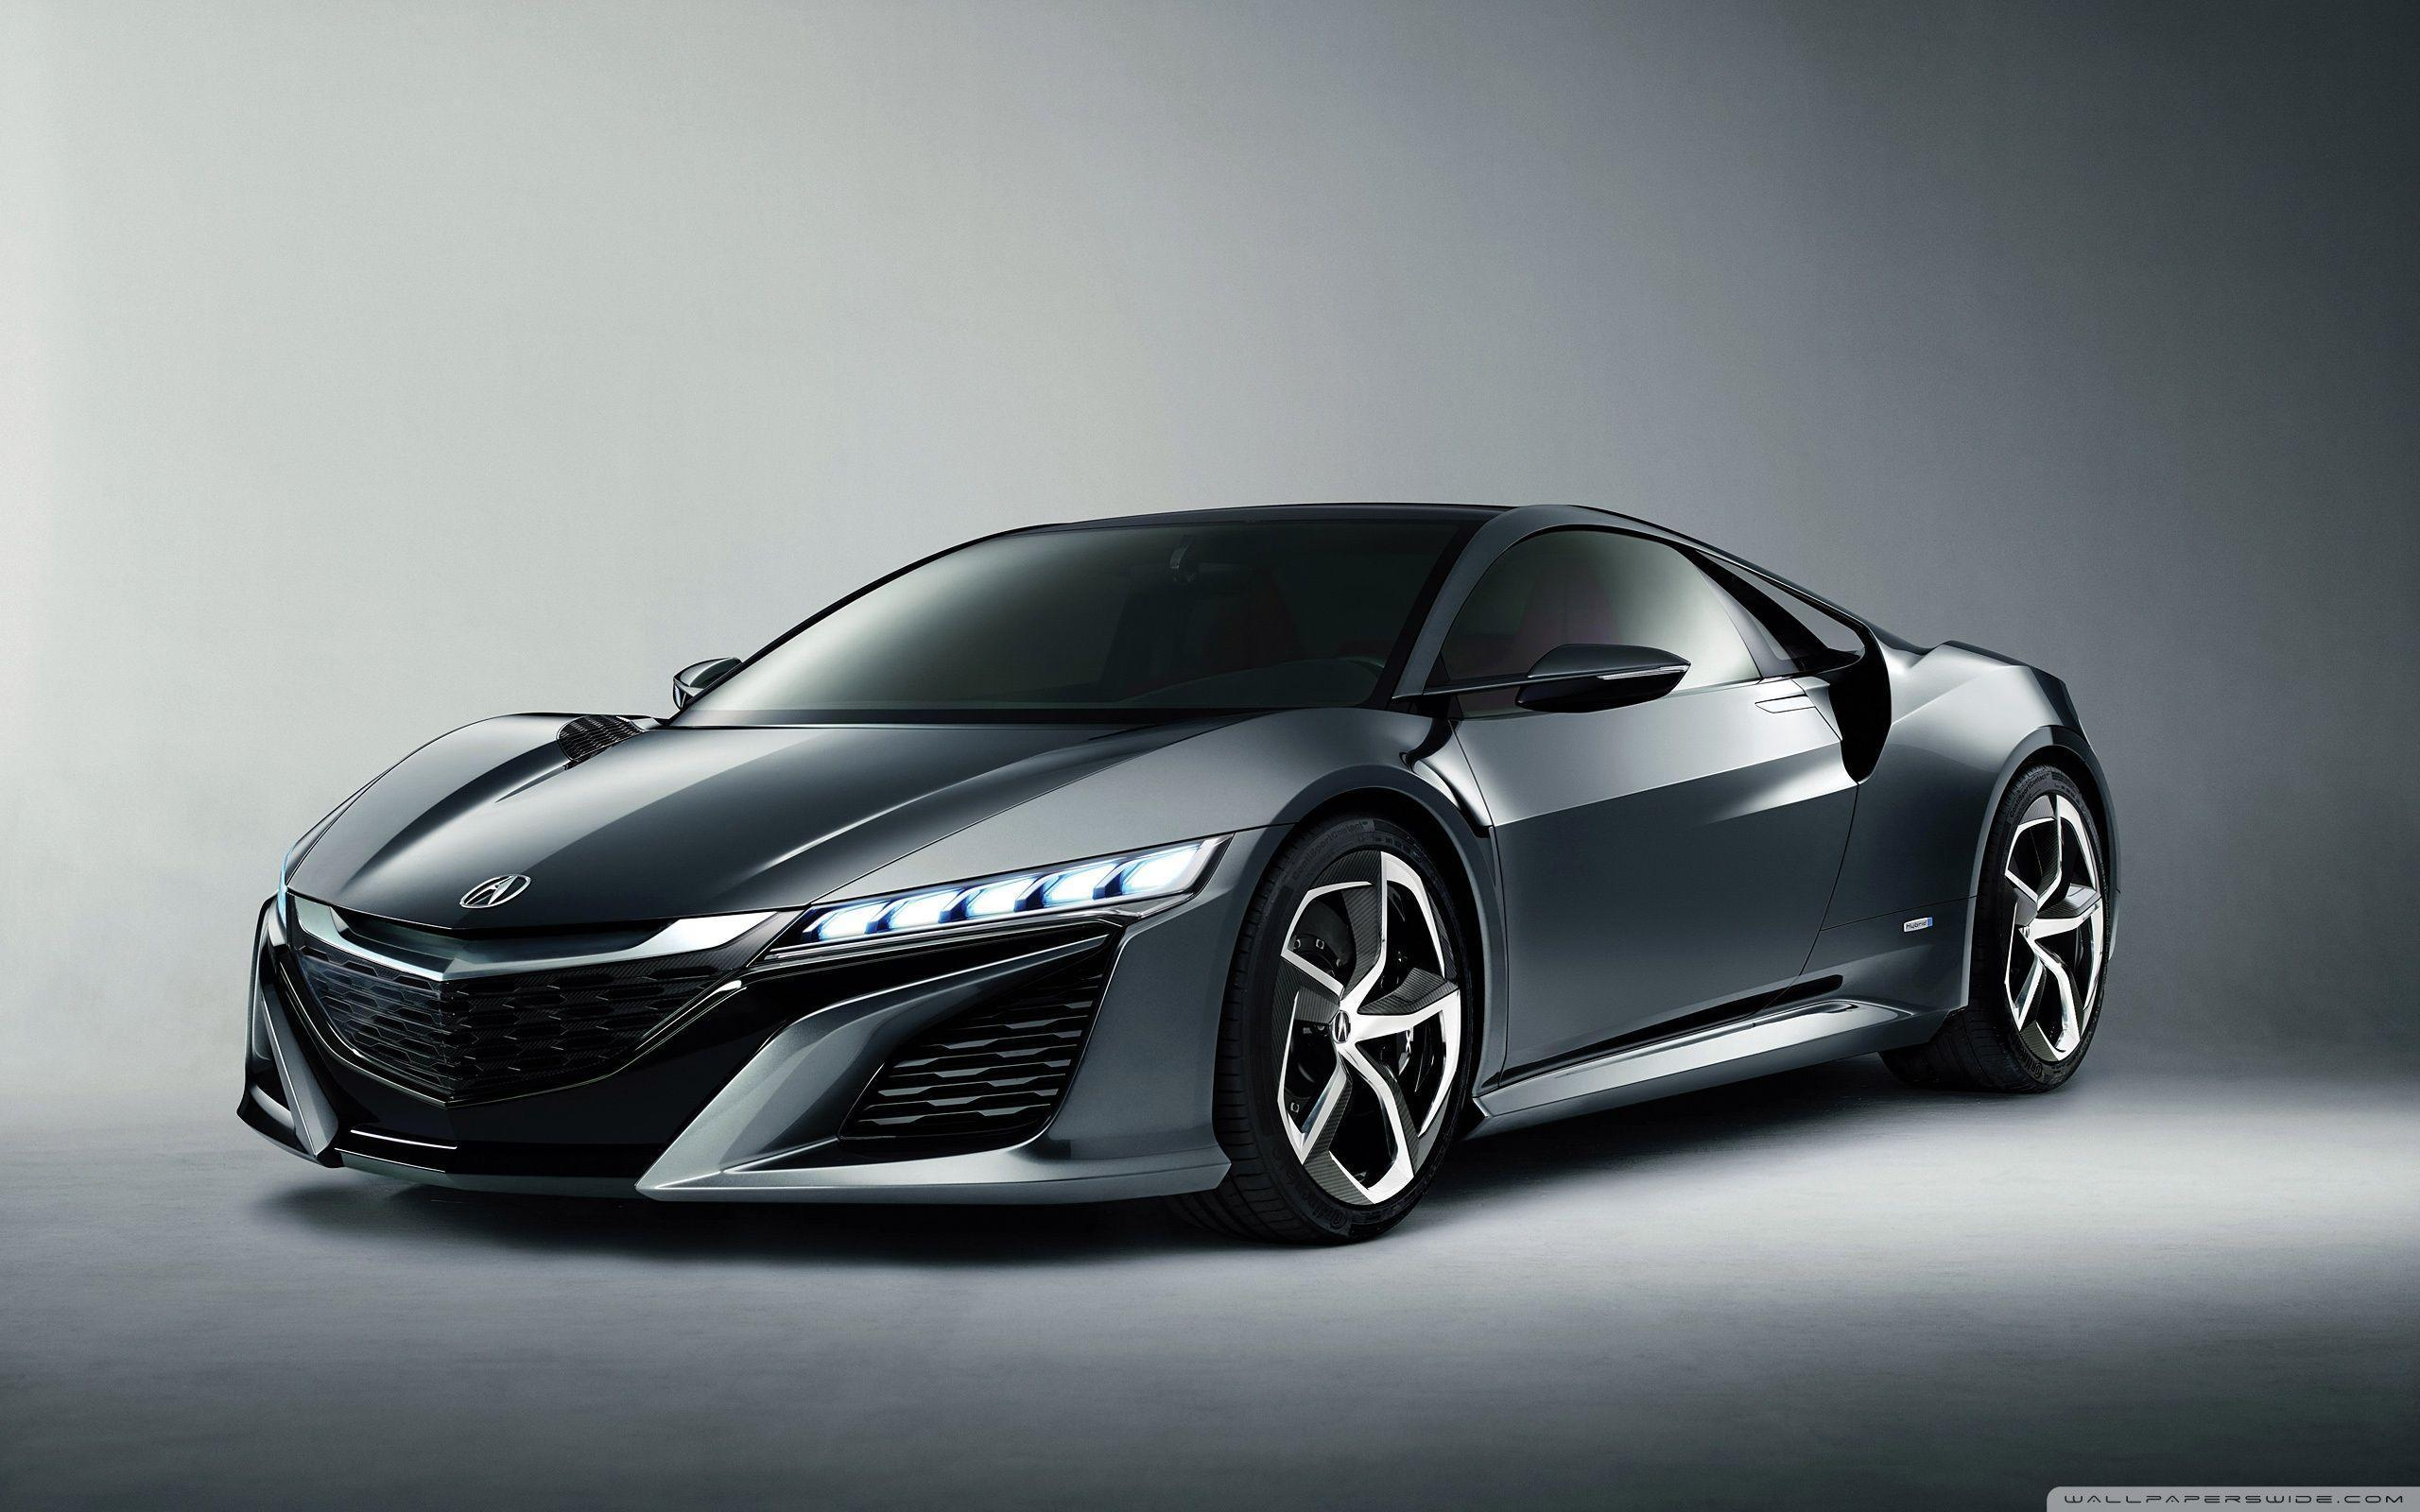 2013 Acura NSX Concept HD desktop wallpaper : High Definition ...